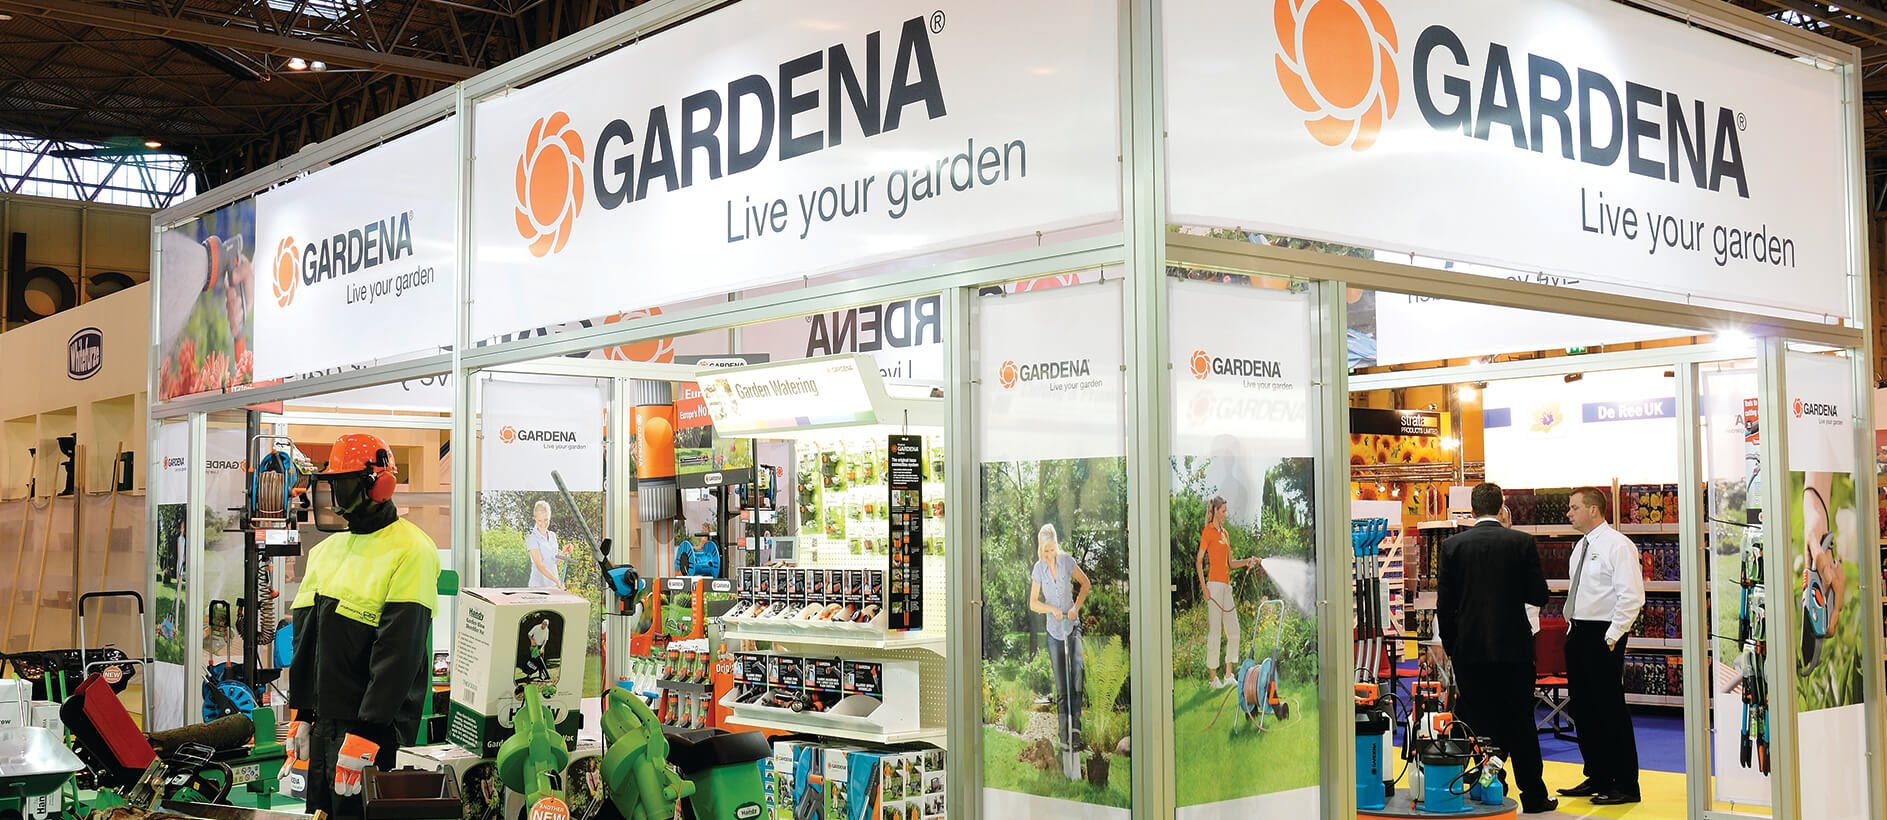 Custom modular display for Gardena including exhibition graphics